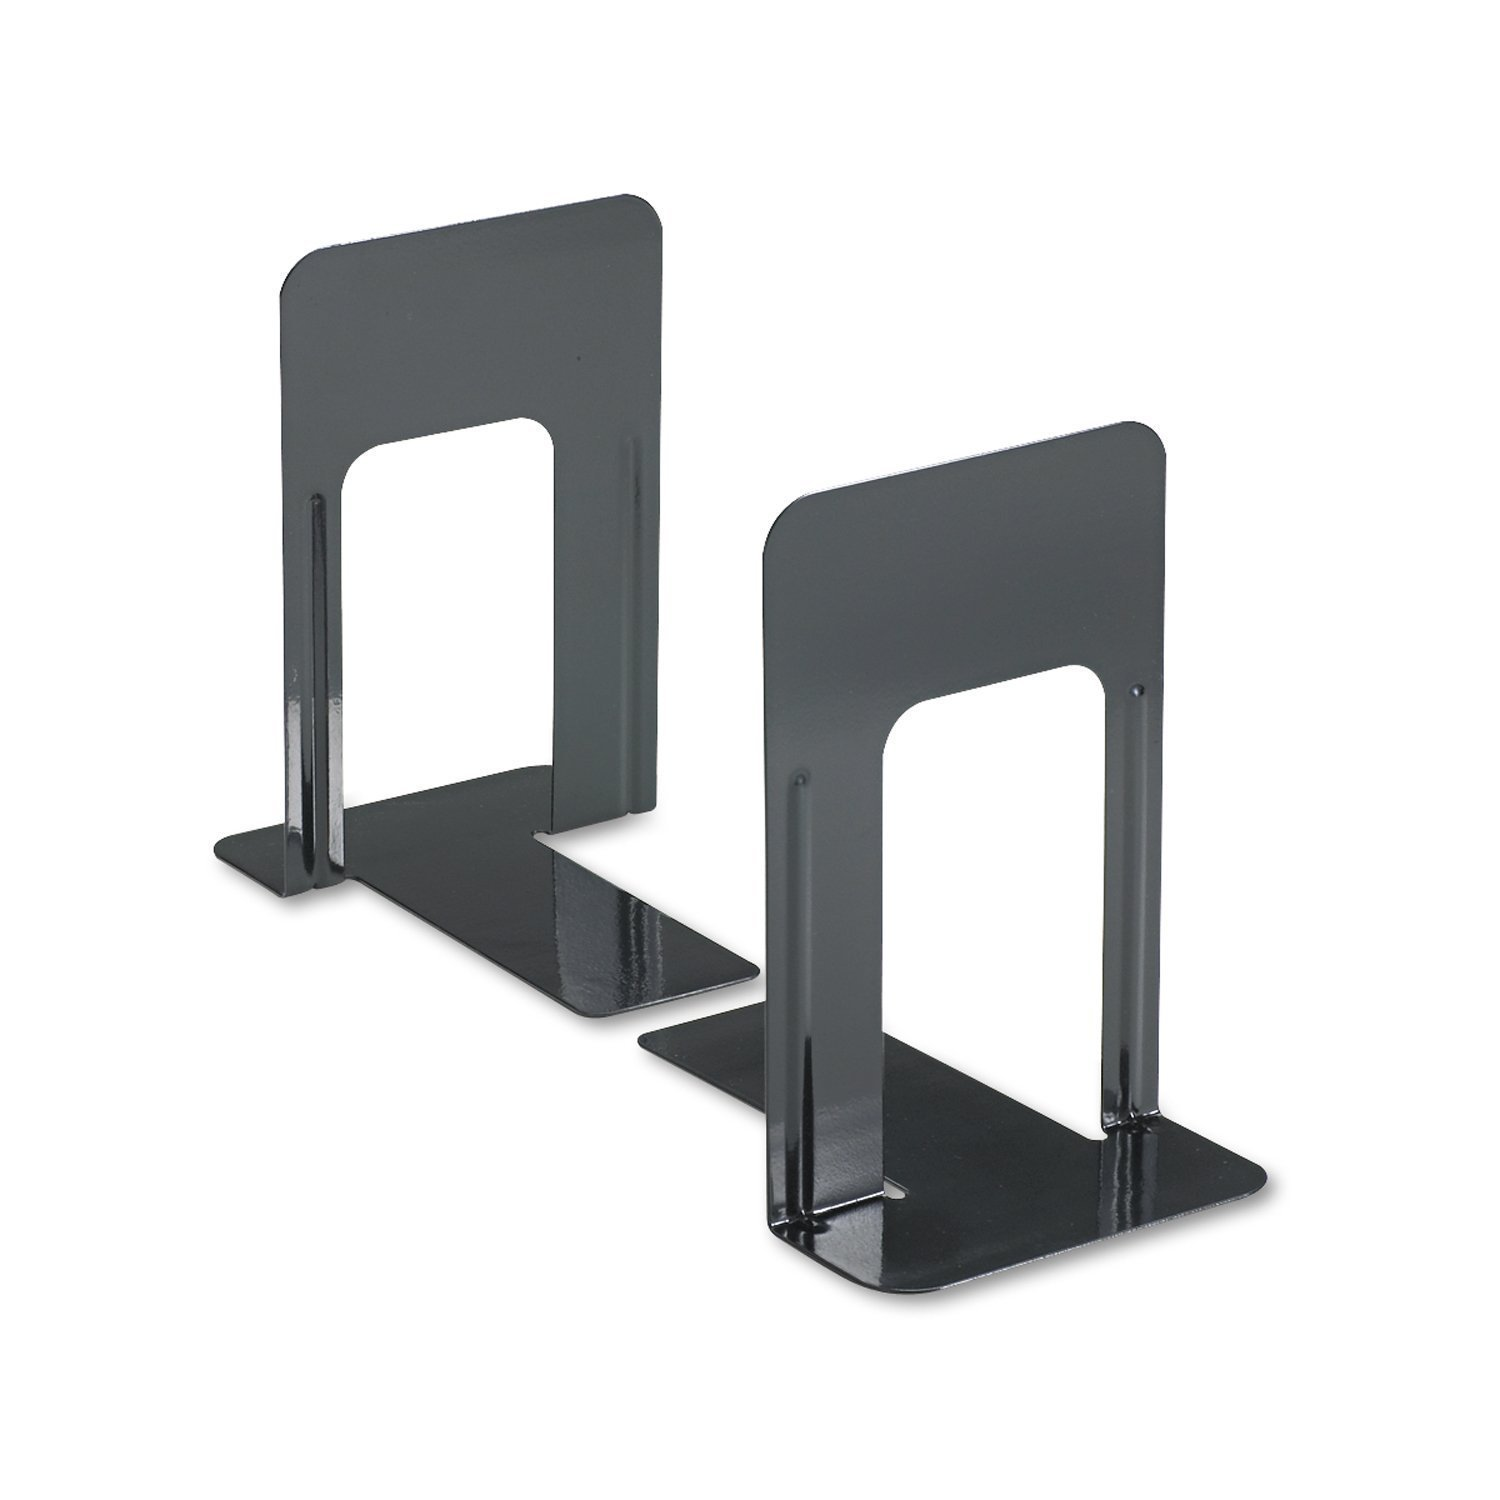 Jumbo Deluxe Heavy Gauge Steel Bookends with Nonskid Padded Base, 5-7/8 x 8-1/4 x 9 inch, Metal, Black, 2 Pairs (Total of 4 Each)